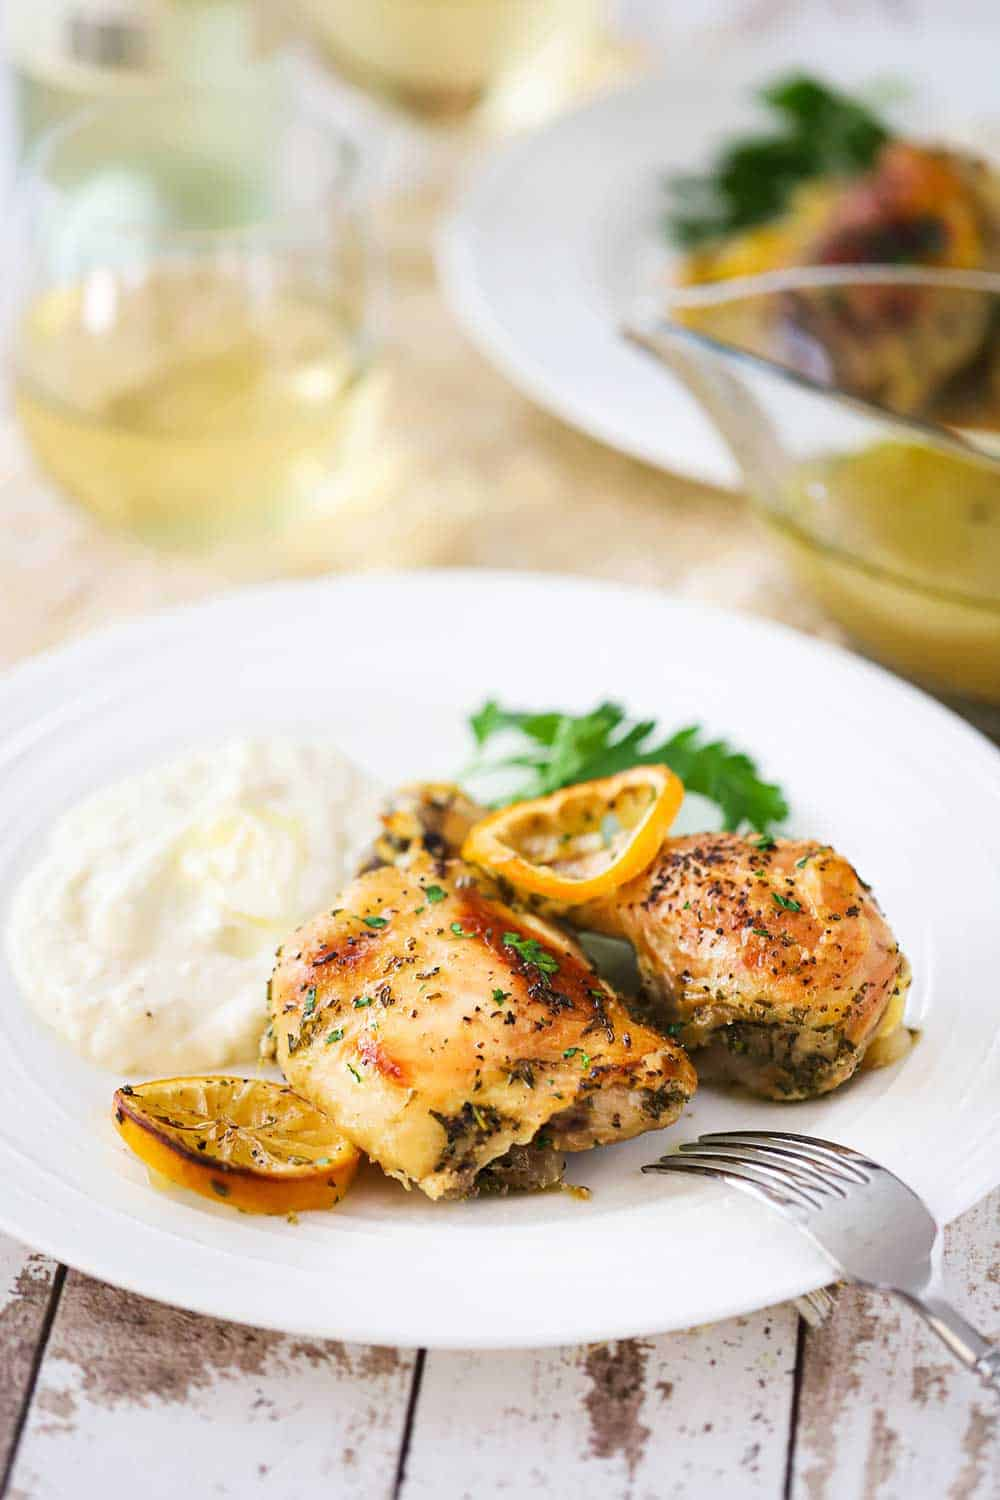 A white plate filled with two roasted chicken pieces, a lemon slice, and mashed potatoes next a glass of white wine.